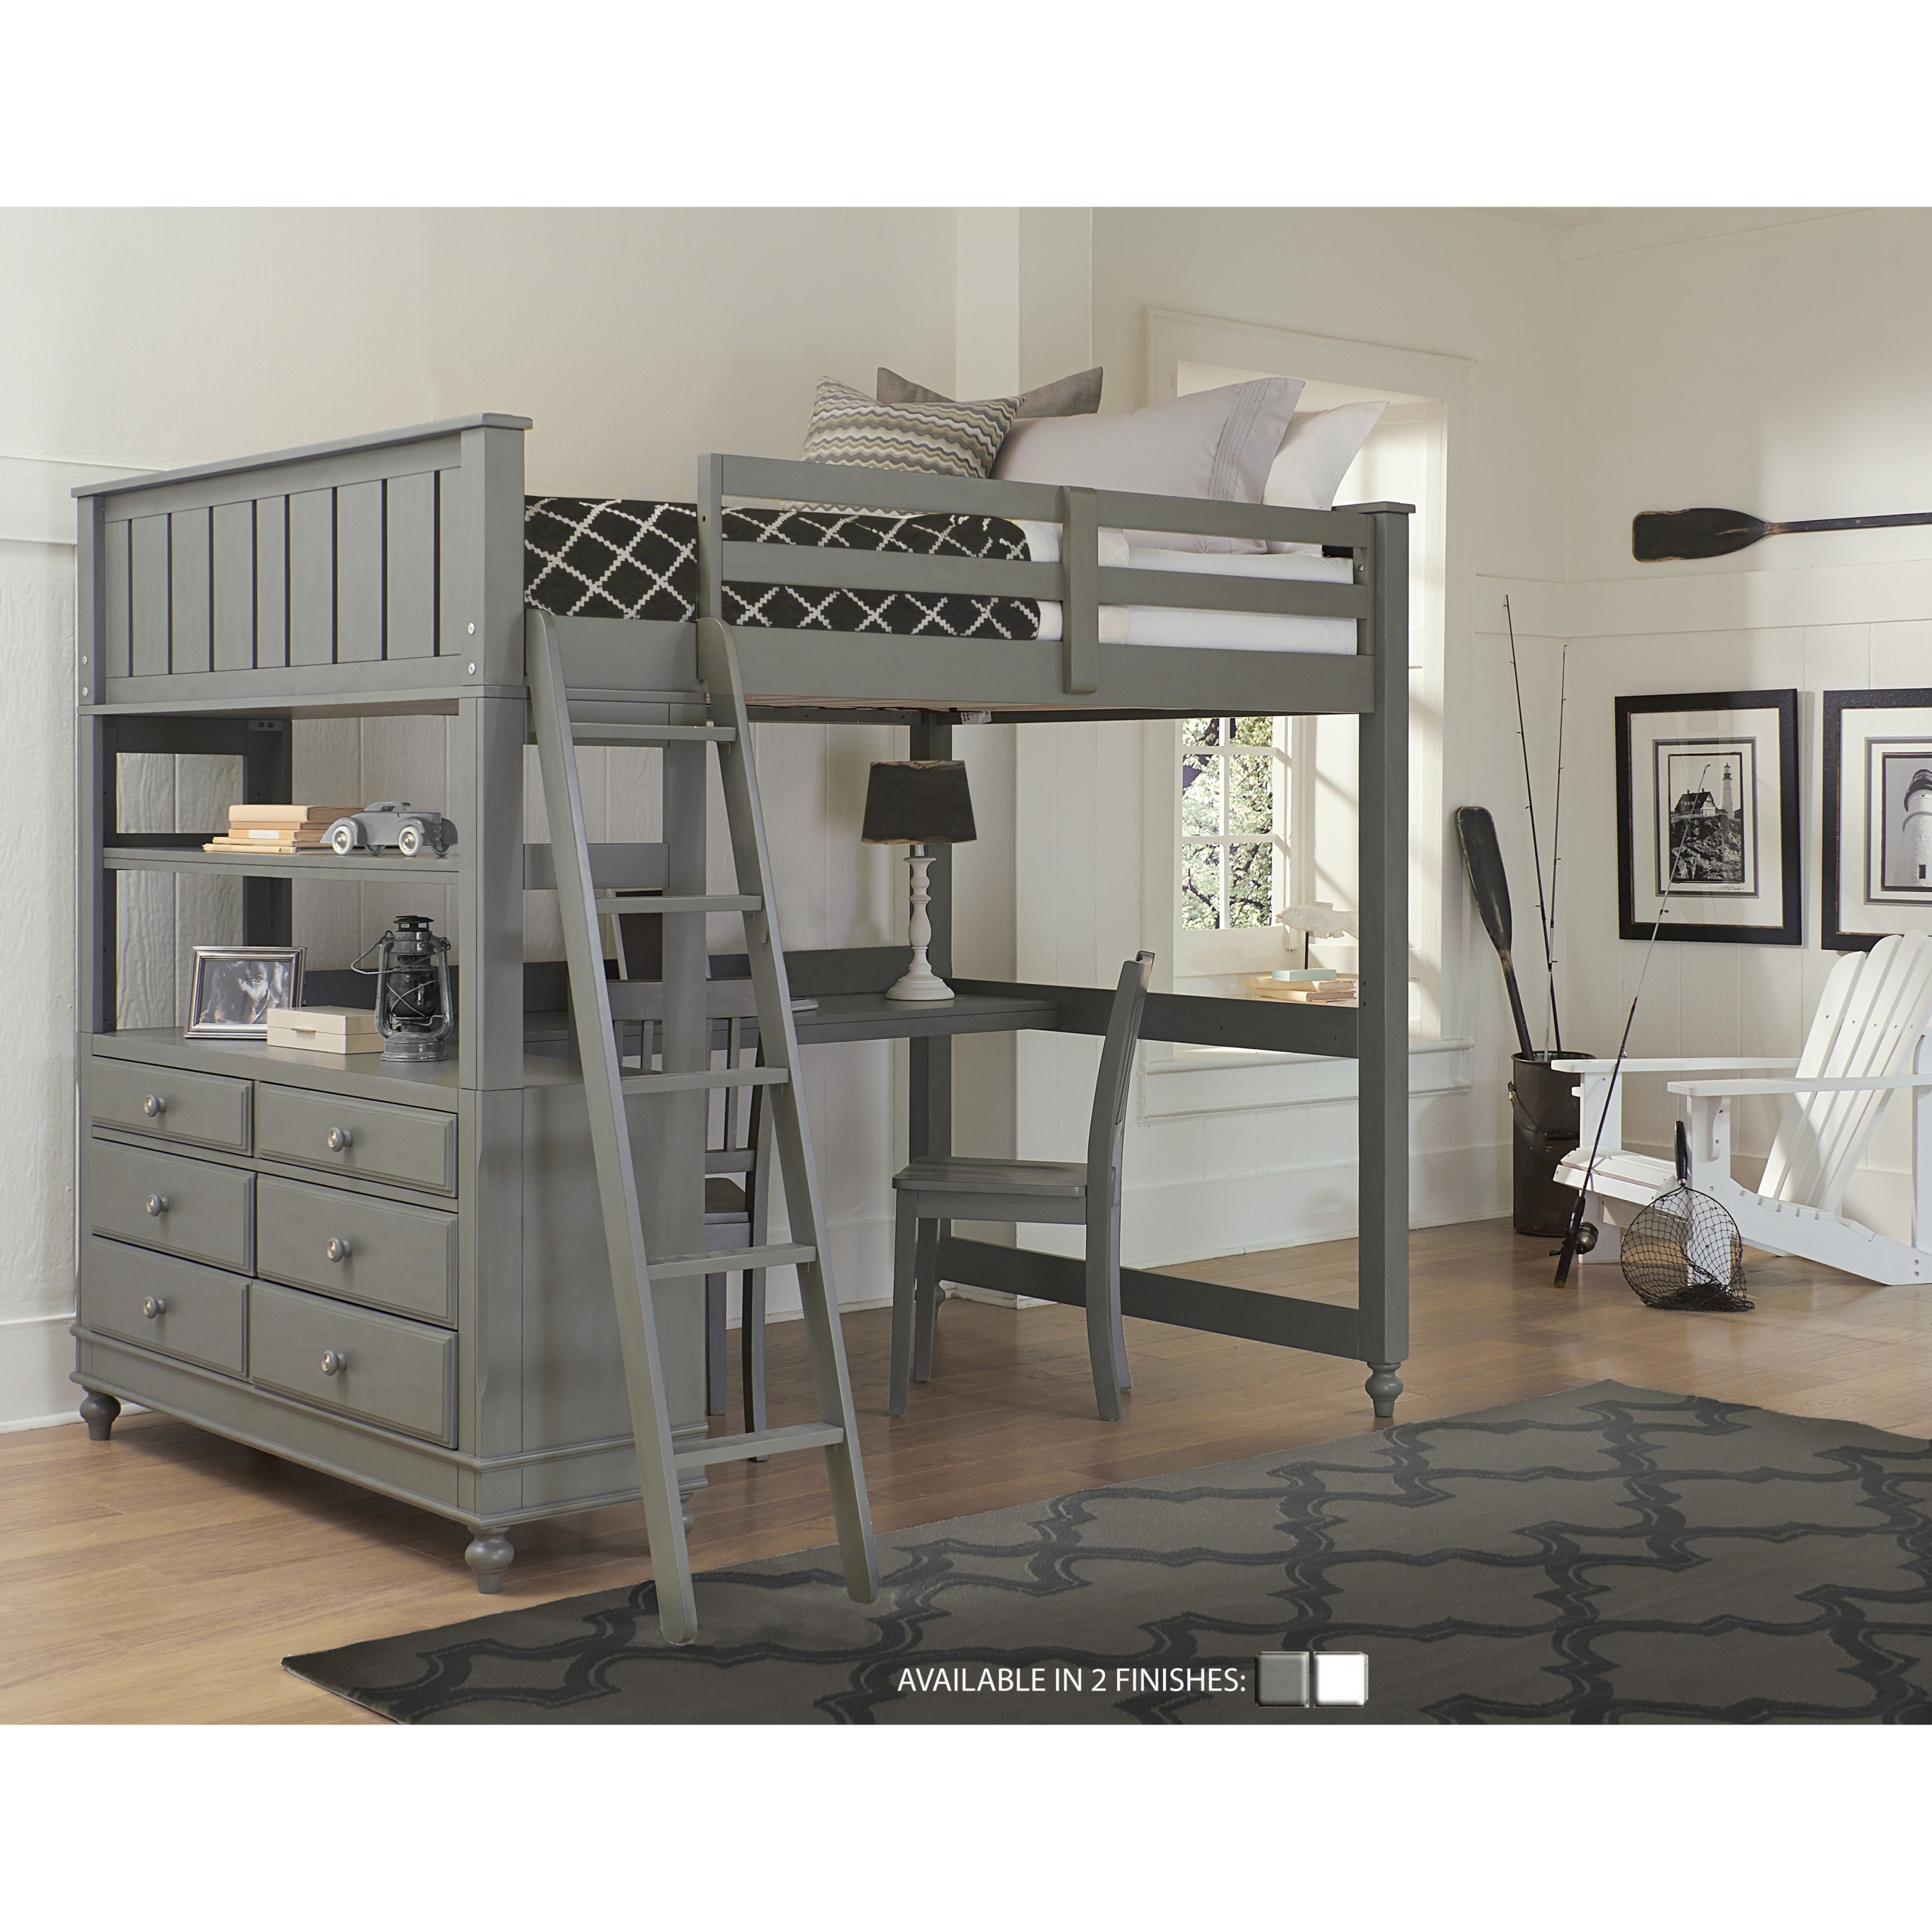 Advantages And Drawbacks Of Strong Wooden Loft Bed With Stairs Full Size Loft Bed With Desk